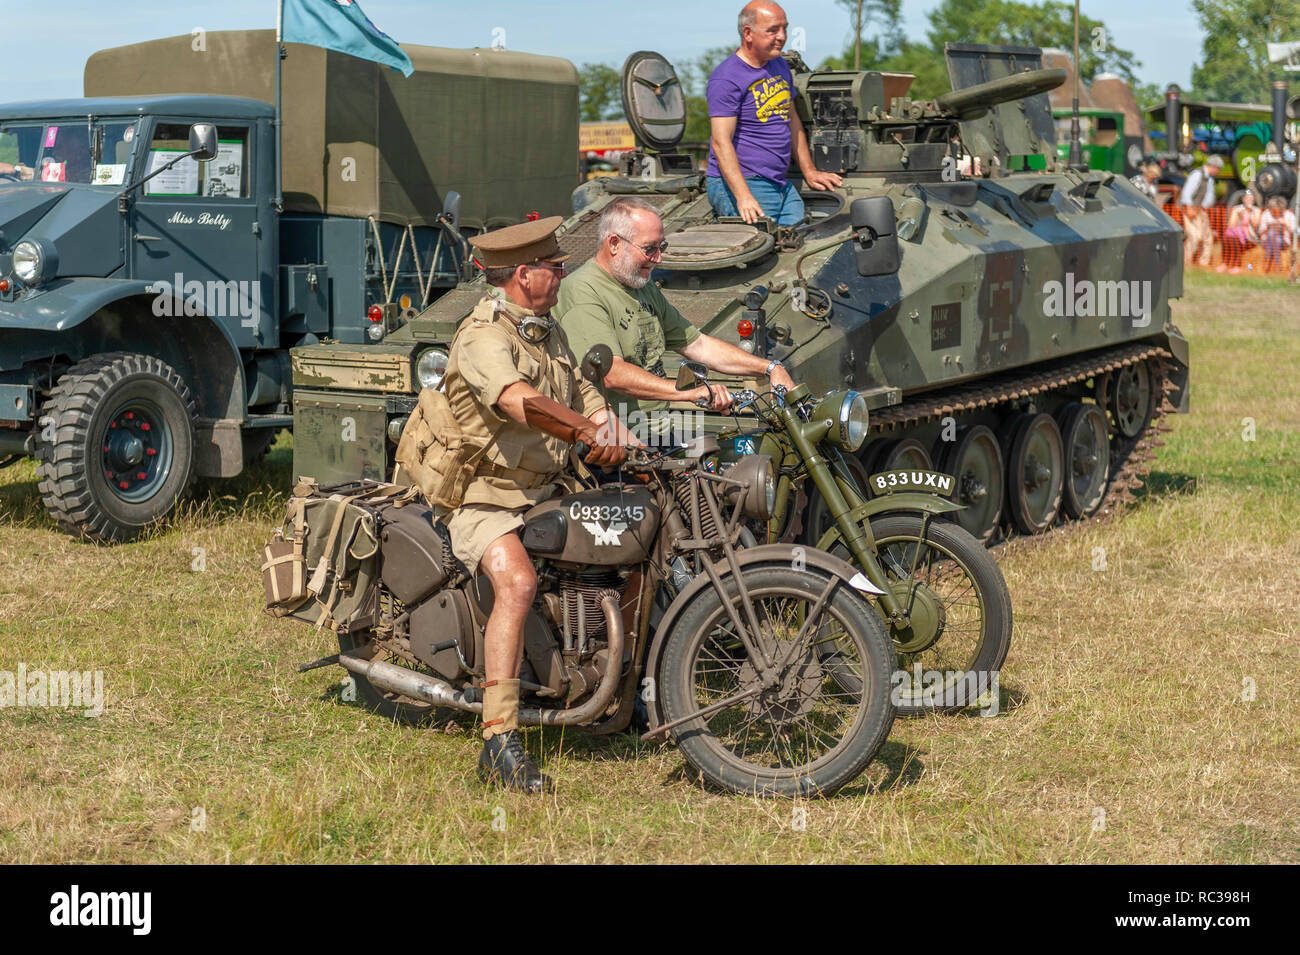 Two vintage British Army Matchless G3 350cc motorcycles at Preston Steam Rally, Kent, England - Stock Image